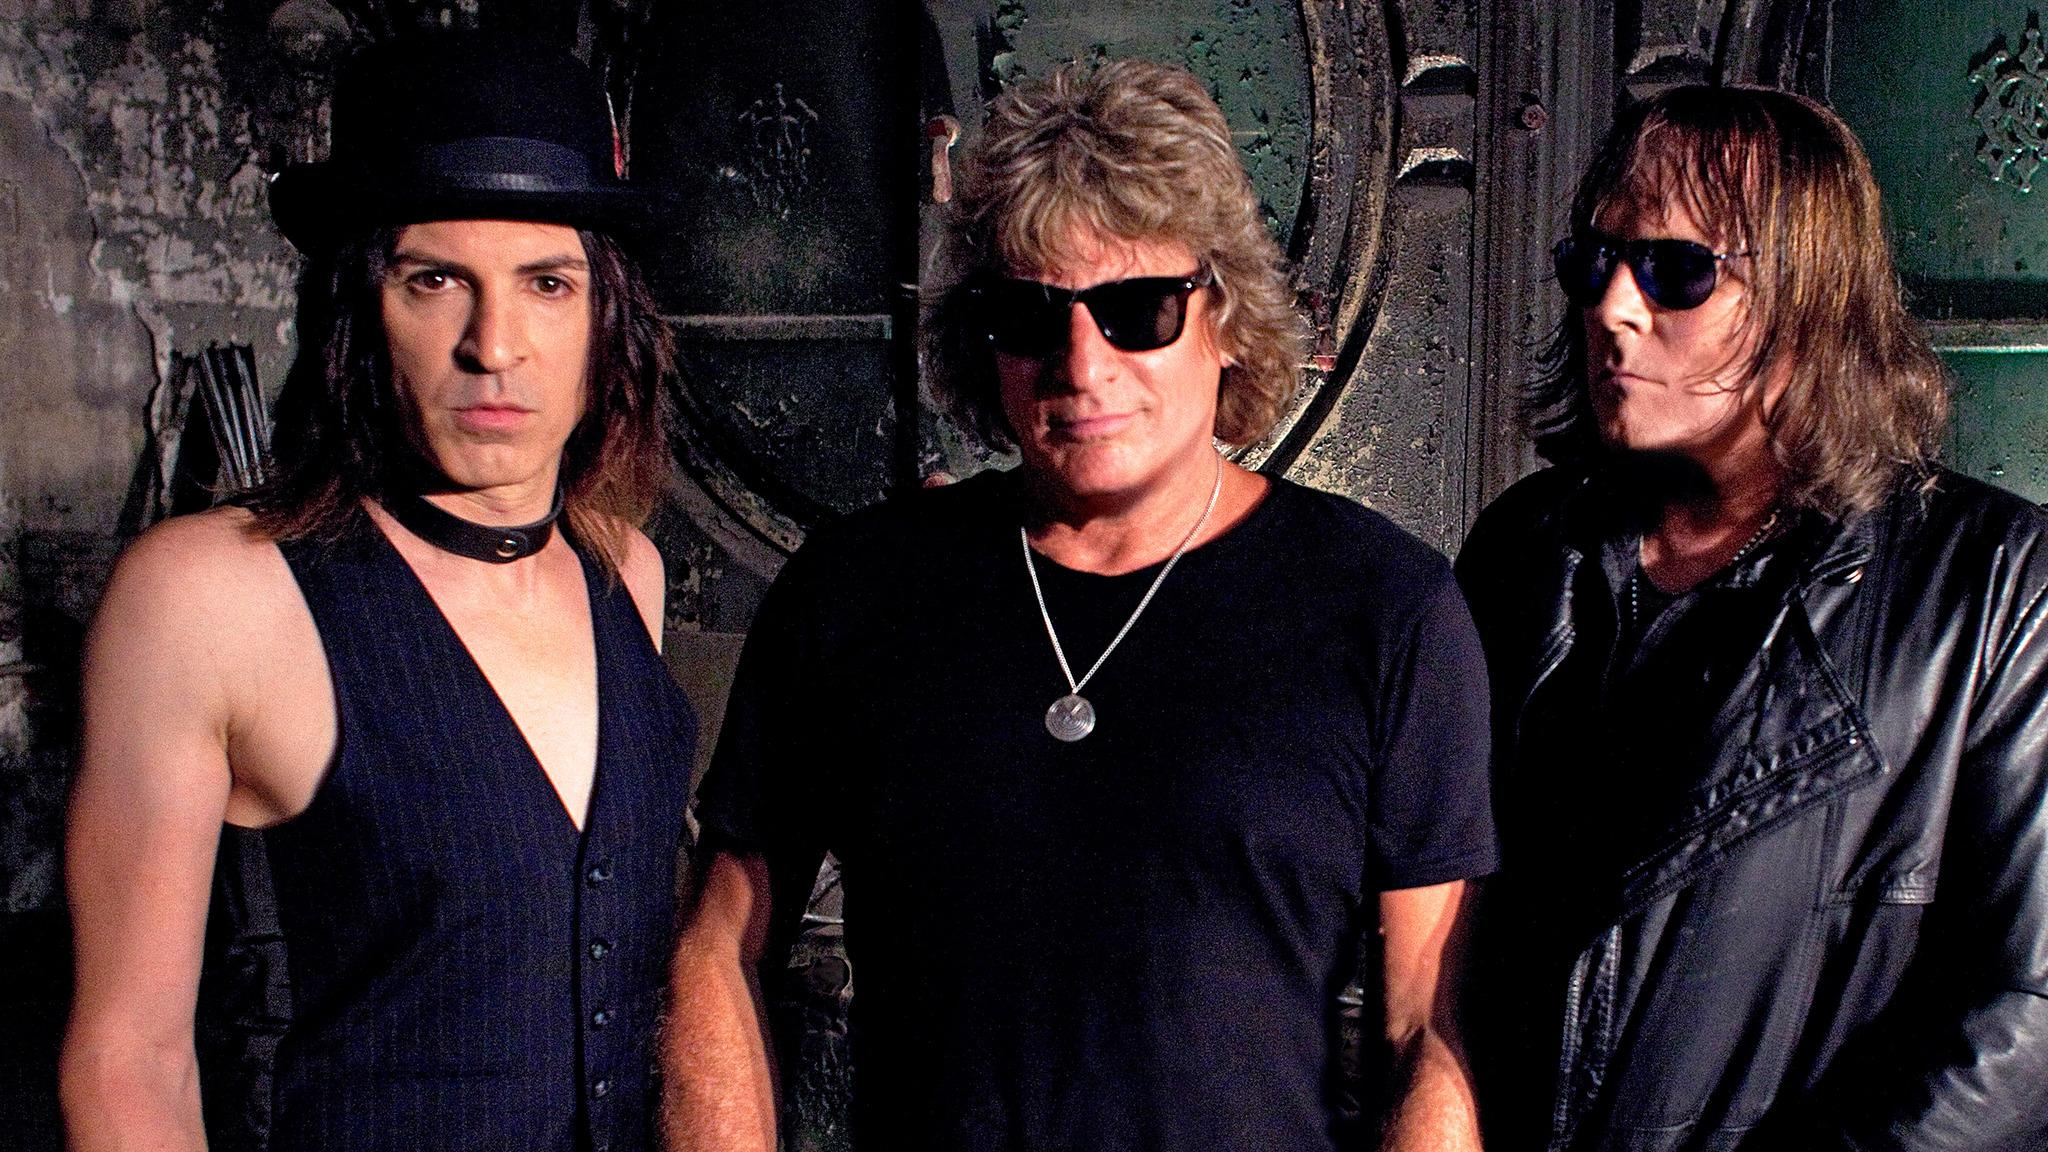 Labor Day Weekend Classic Rock Bash W/ Dokken, Warrant, and Mick Blank